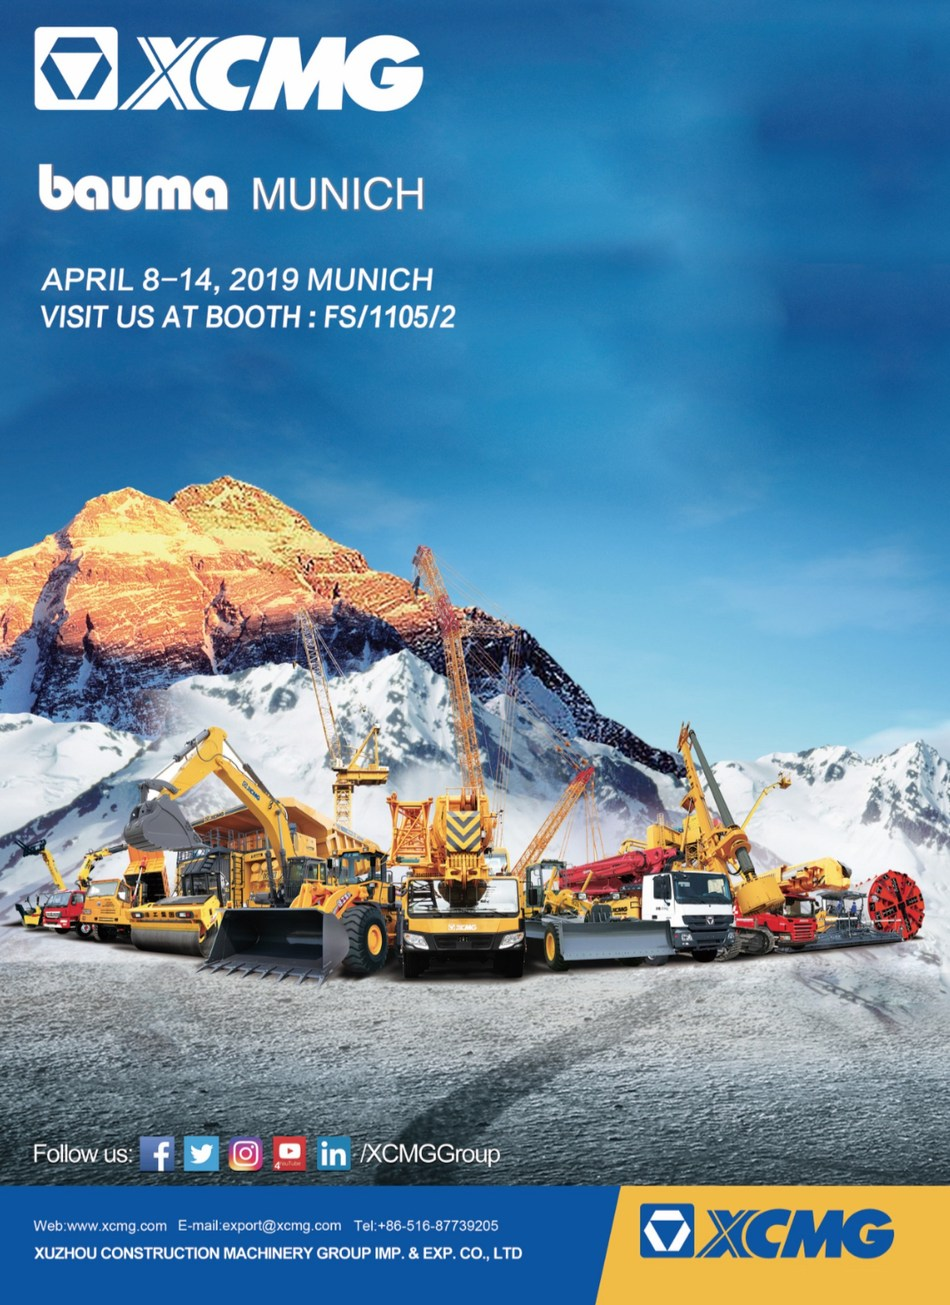 XCMG to Bring Latest Machinery and Construction Solutions to bauma 2019 at booth FS.1105/2 of Messe Munchen.